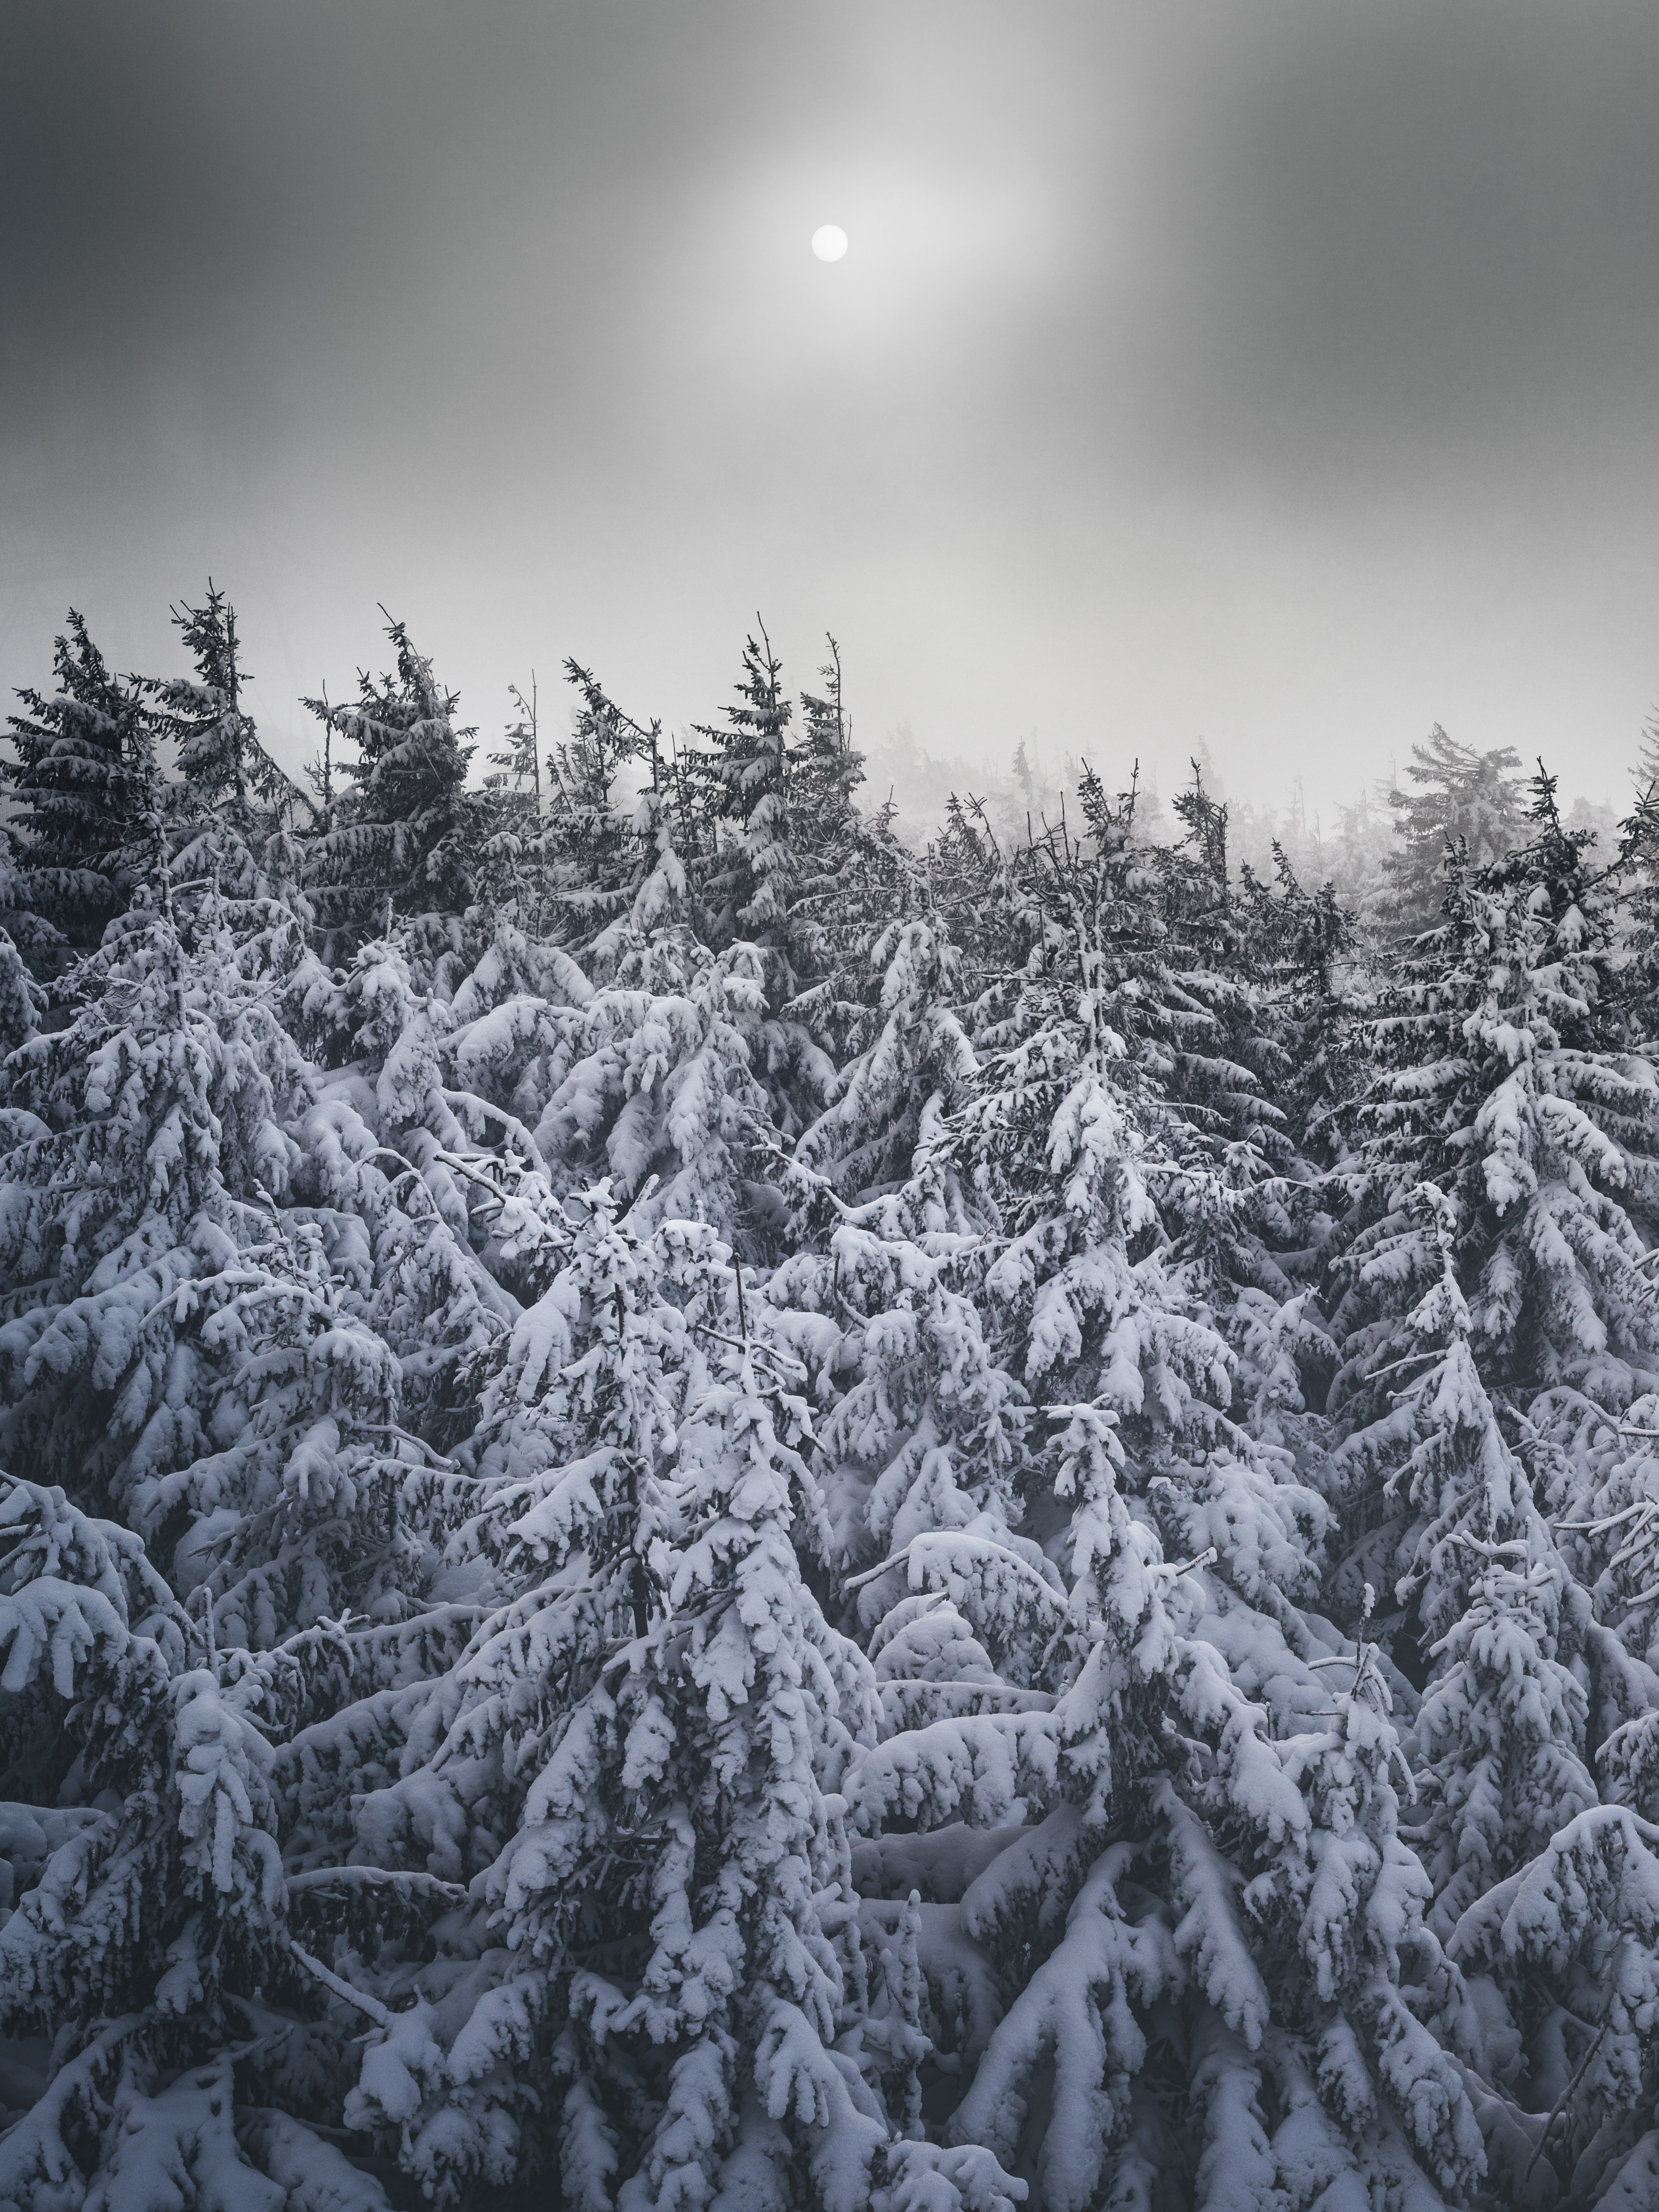 125257 download wallpaper Nature, Snow, Trees, Winter, Snow Covered, Snowbound, Fir-Trees screensavers and pictures for free